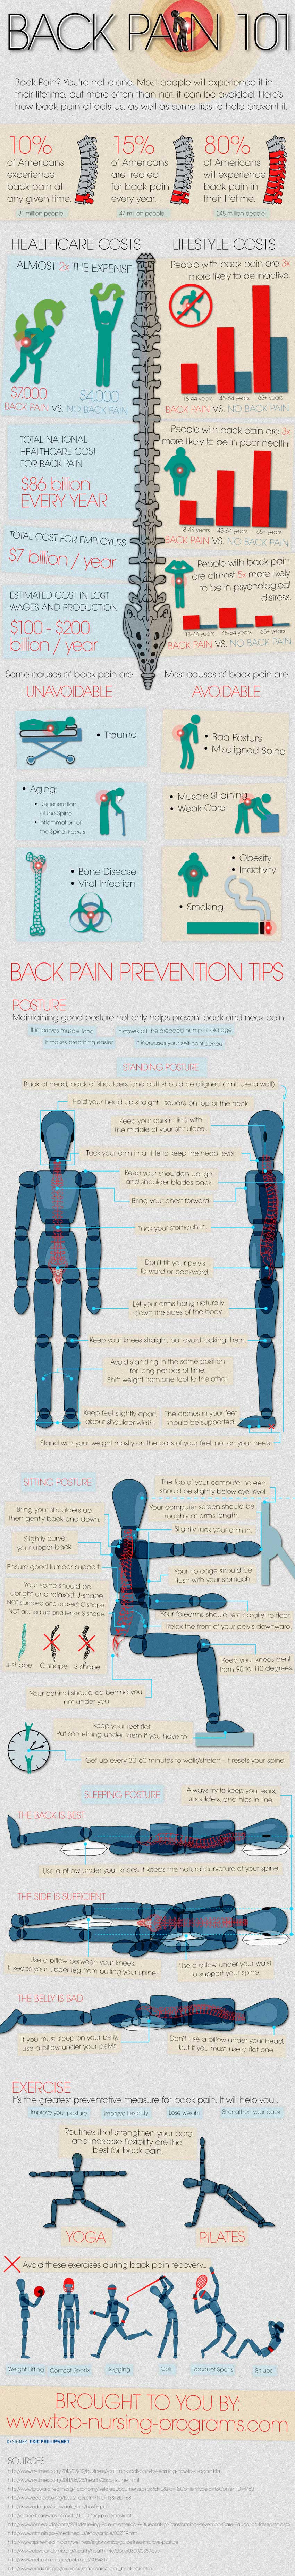 Back Pain Prevention Tips-Infographic